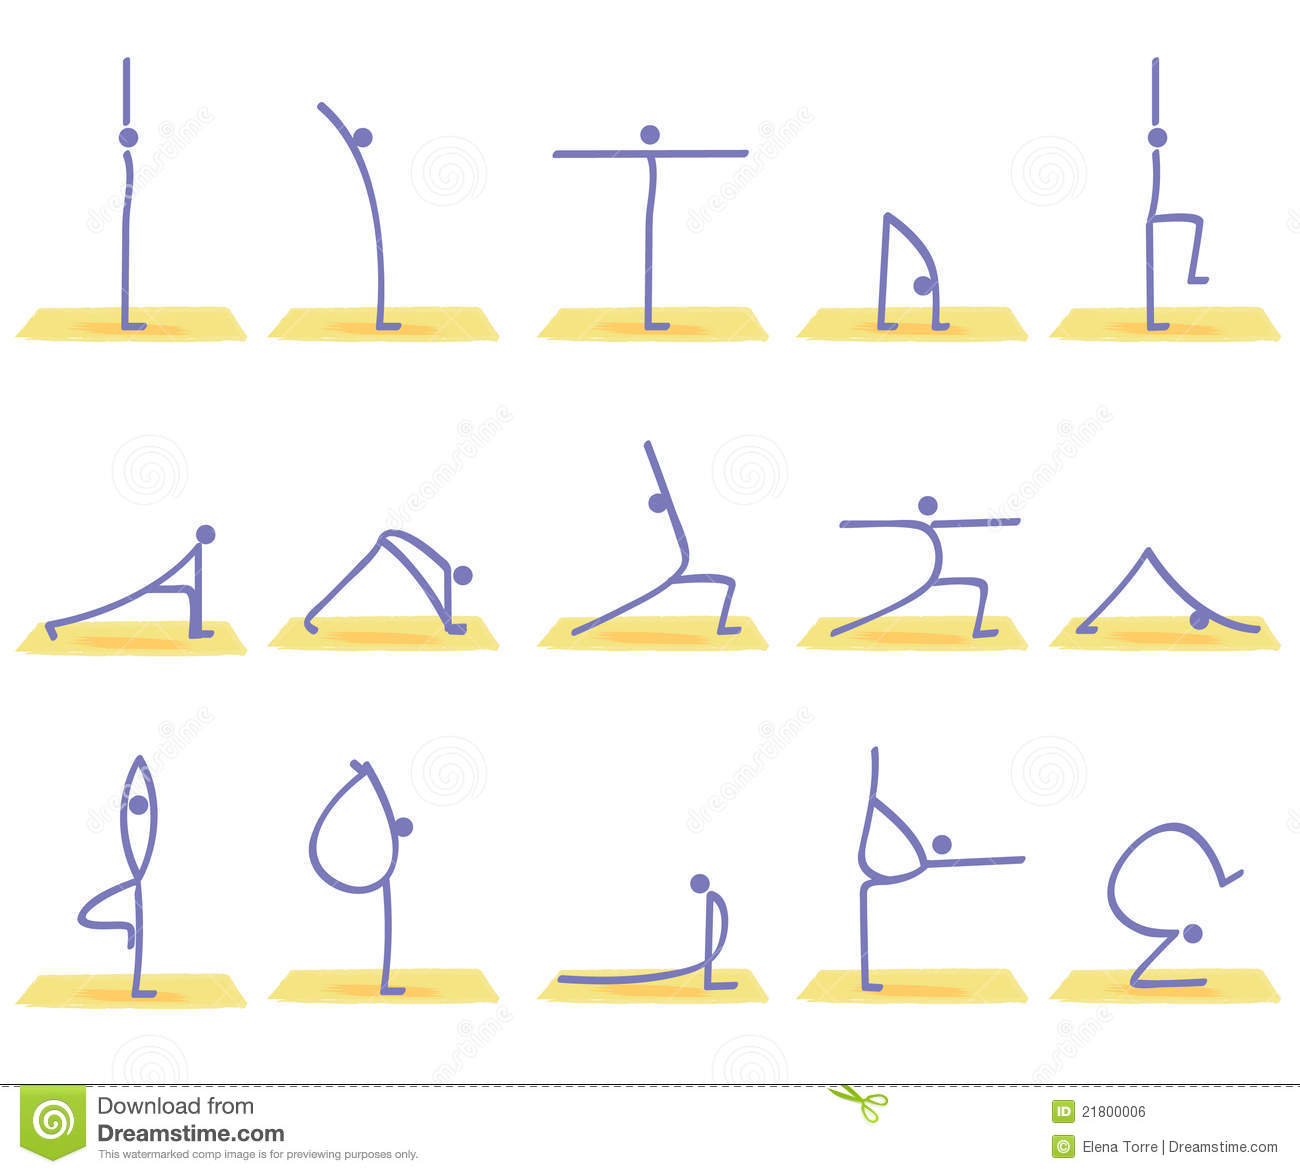 Yoga Poses Vector Royalty Free Stock Image - Image: 21800006